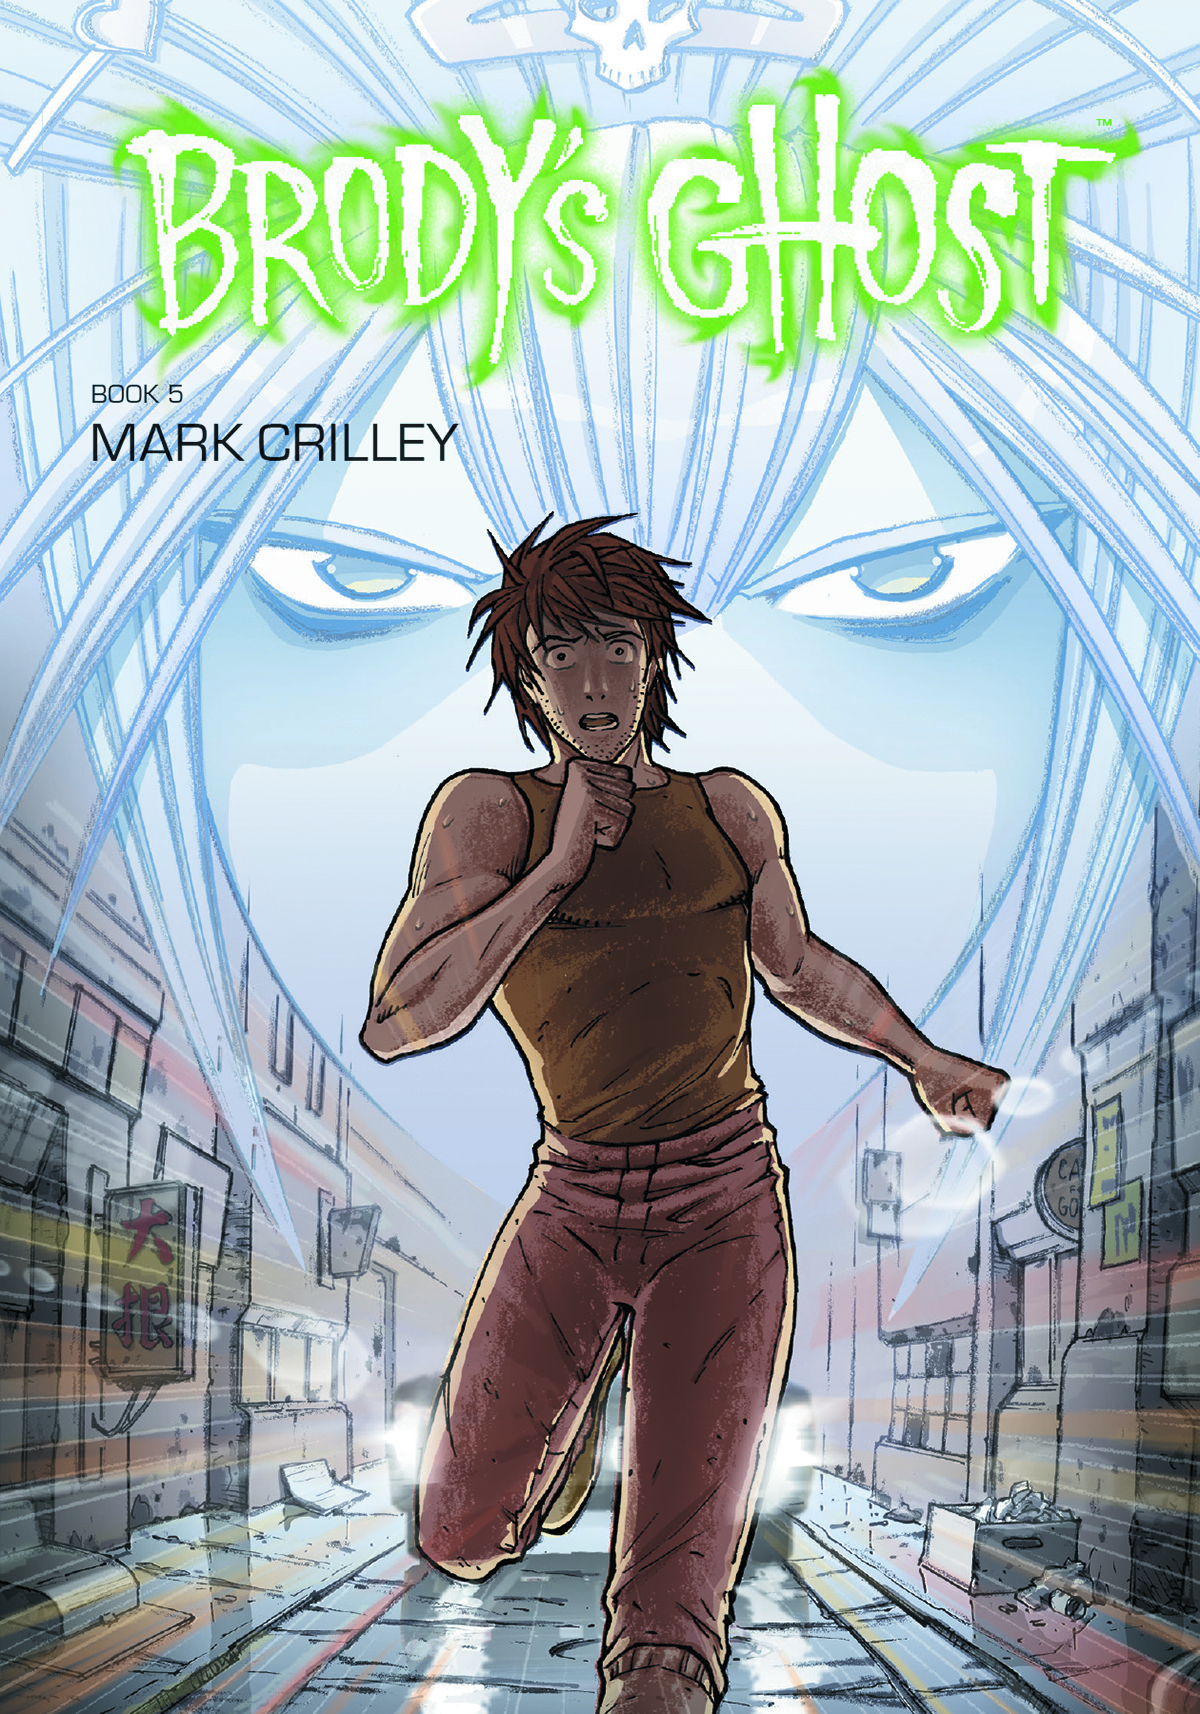 BRODYS GHOST TP VOL 05